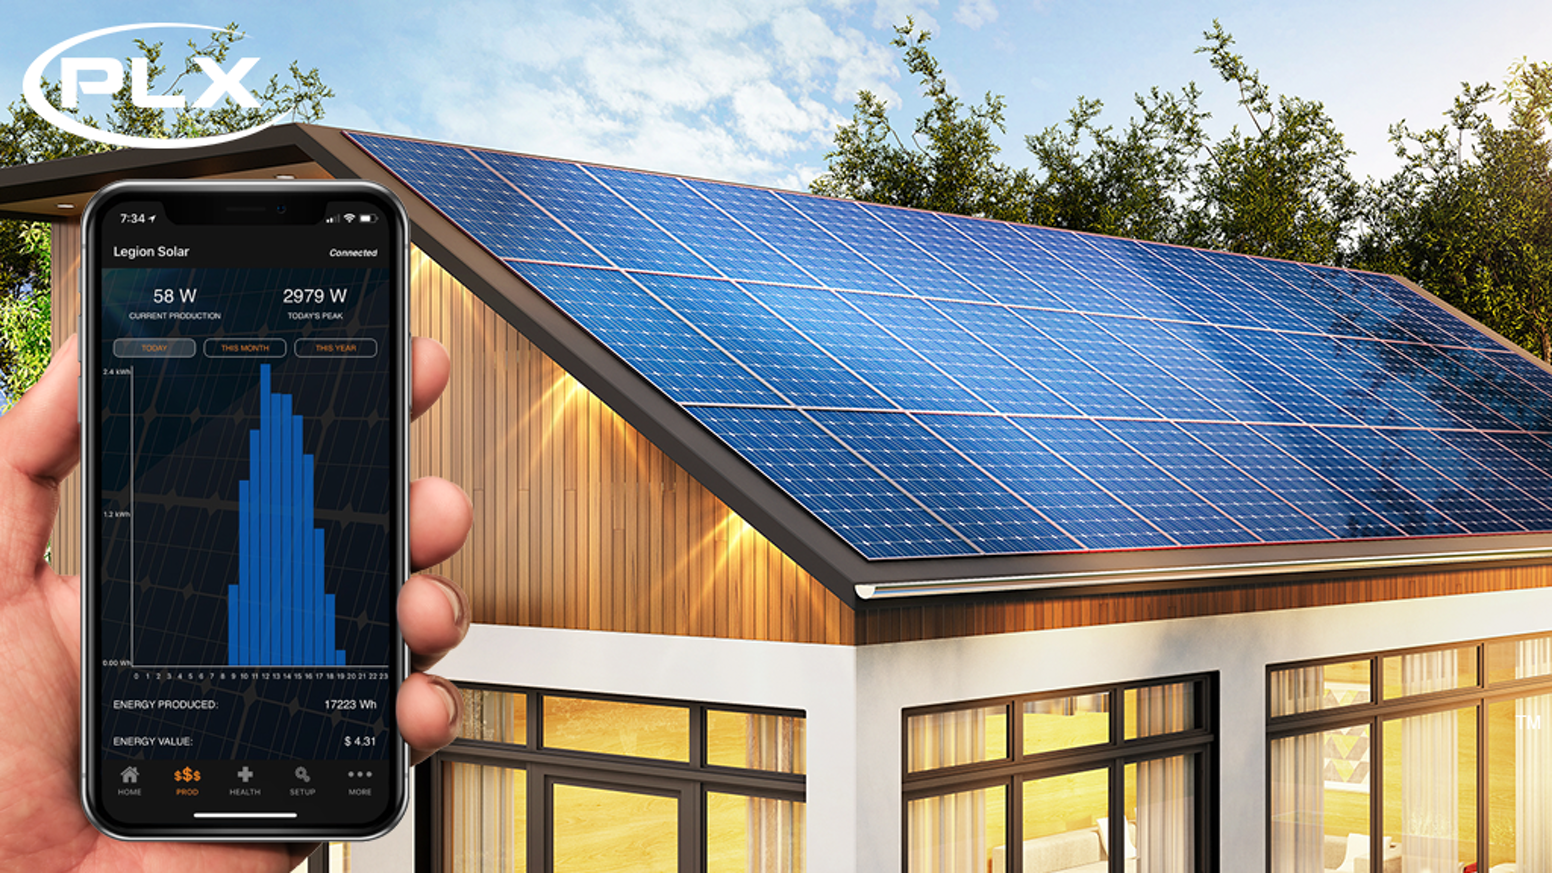 Do-it-yourself plug and play solar, installs in minutes, delivers instant results, 3x faster ROI for complete energy independence.